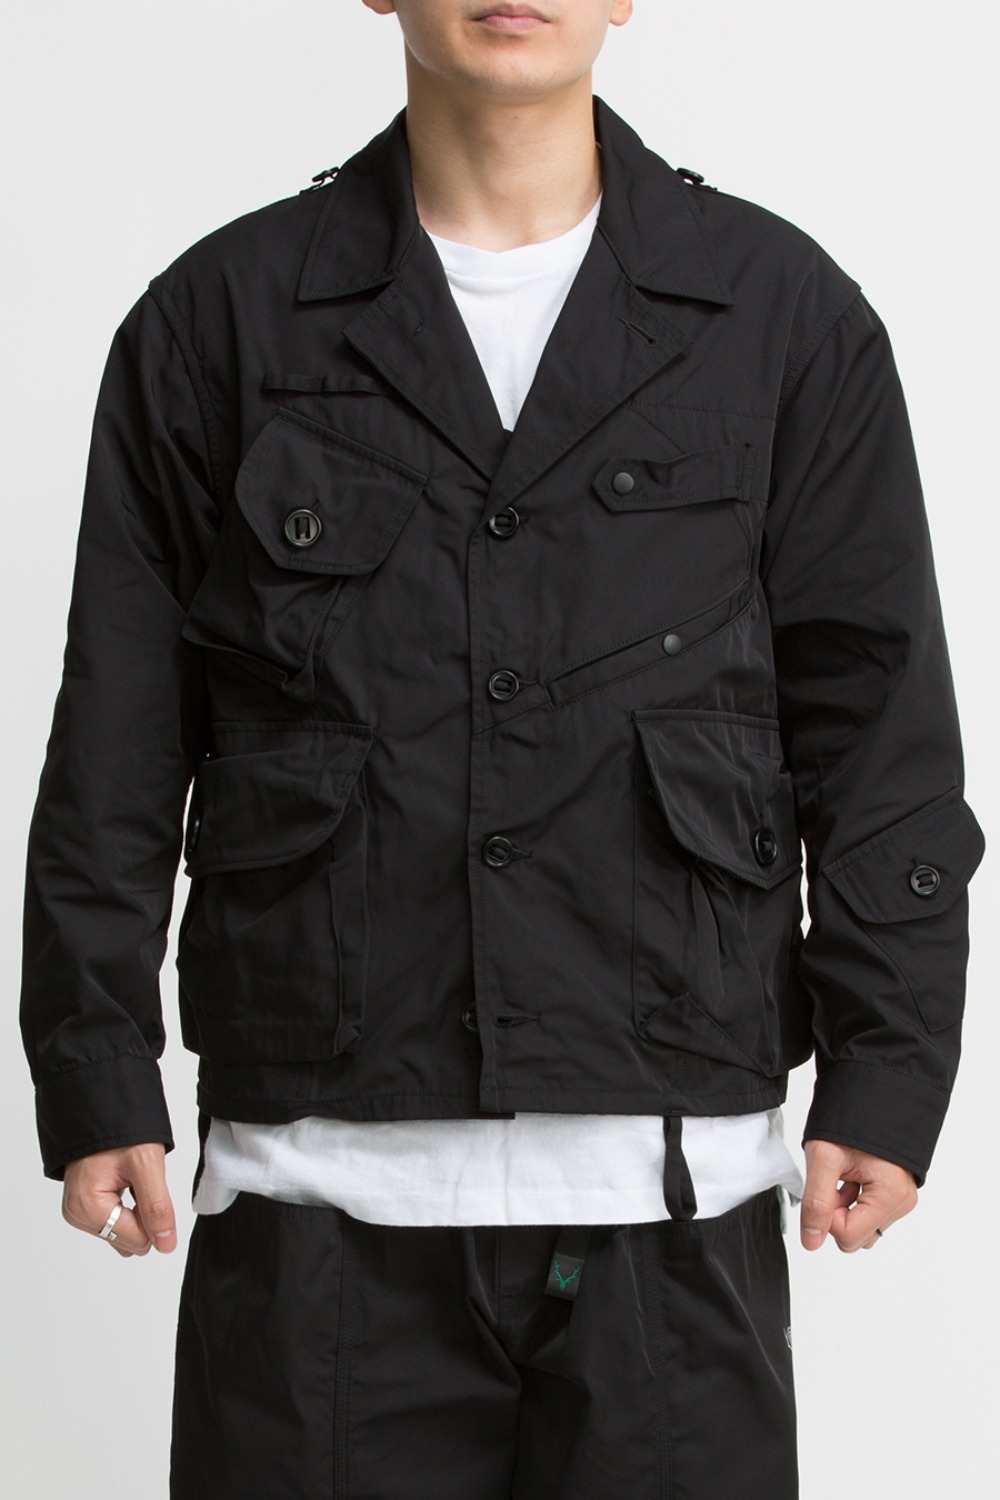 TENKARA SHIRT JACKET- POLY GABARDINE BLACK